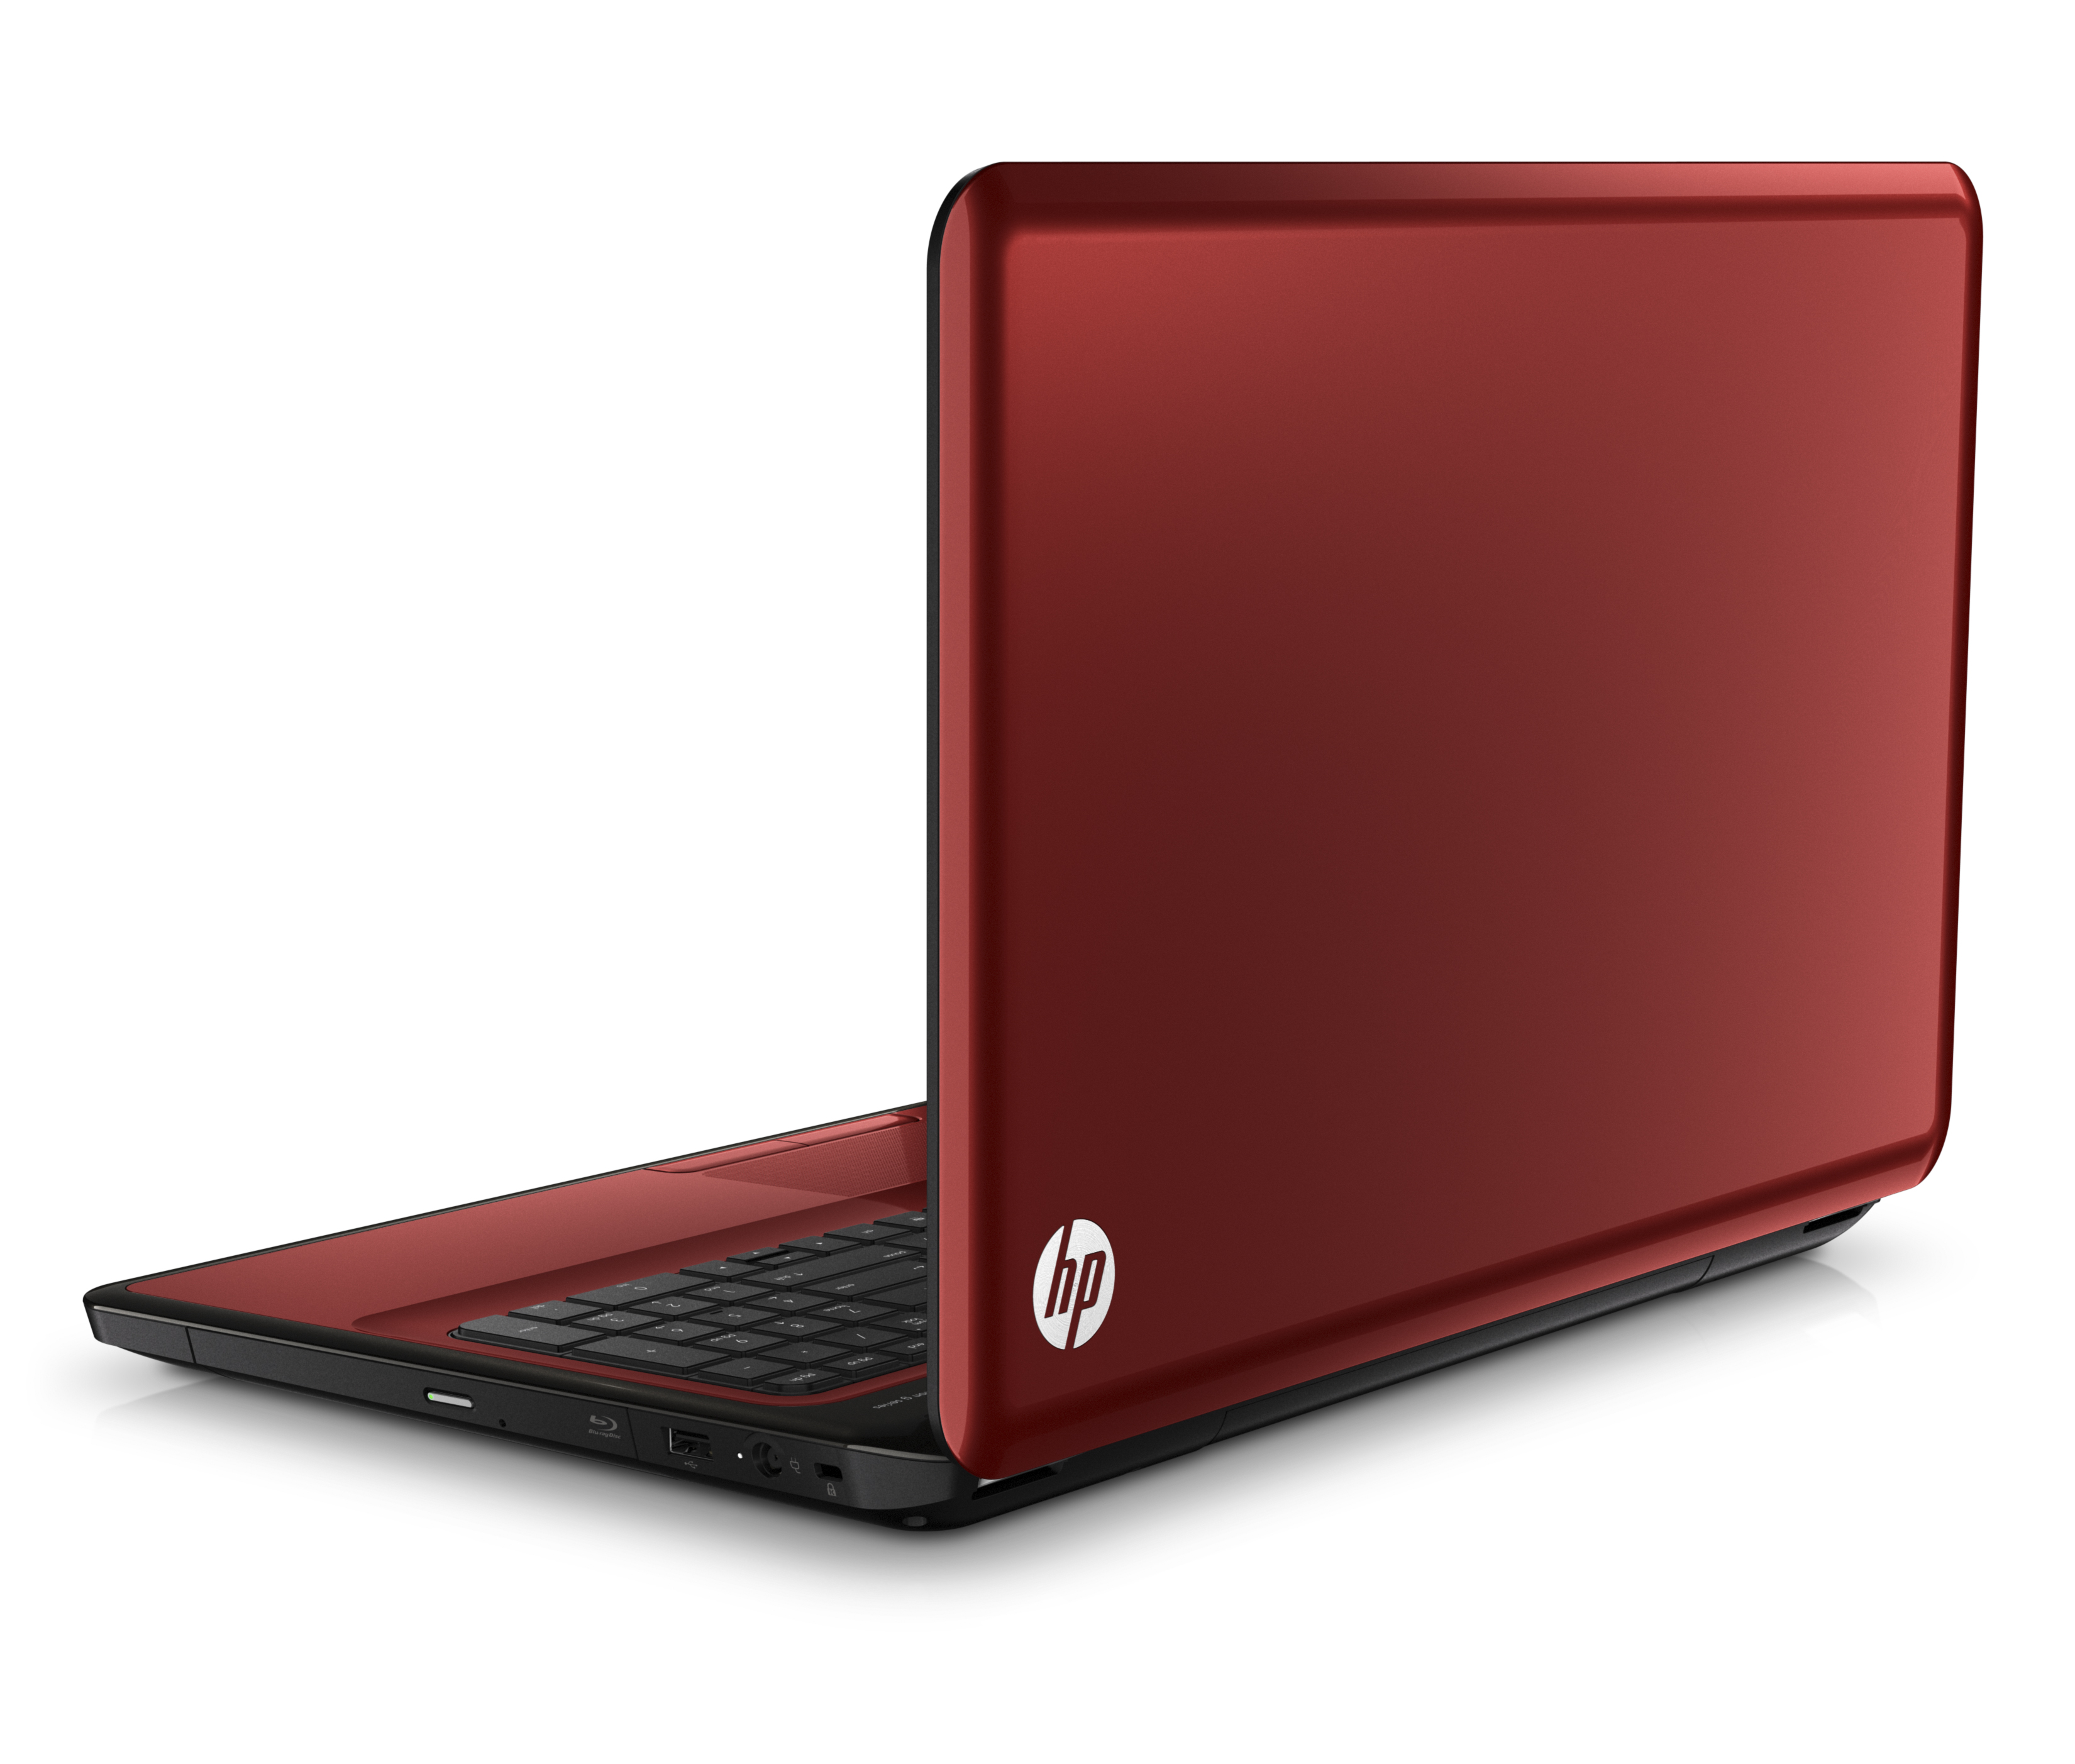 hp pavilion g series announced g4 g6 and g7 notebooks arrive video. Black Bedroom Furniture Sets. Home Design Ideas